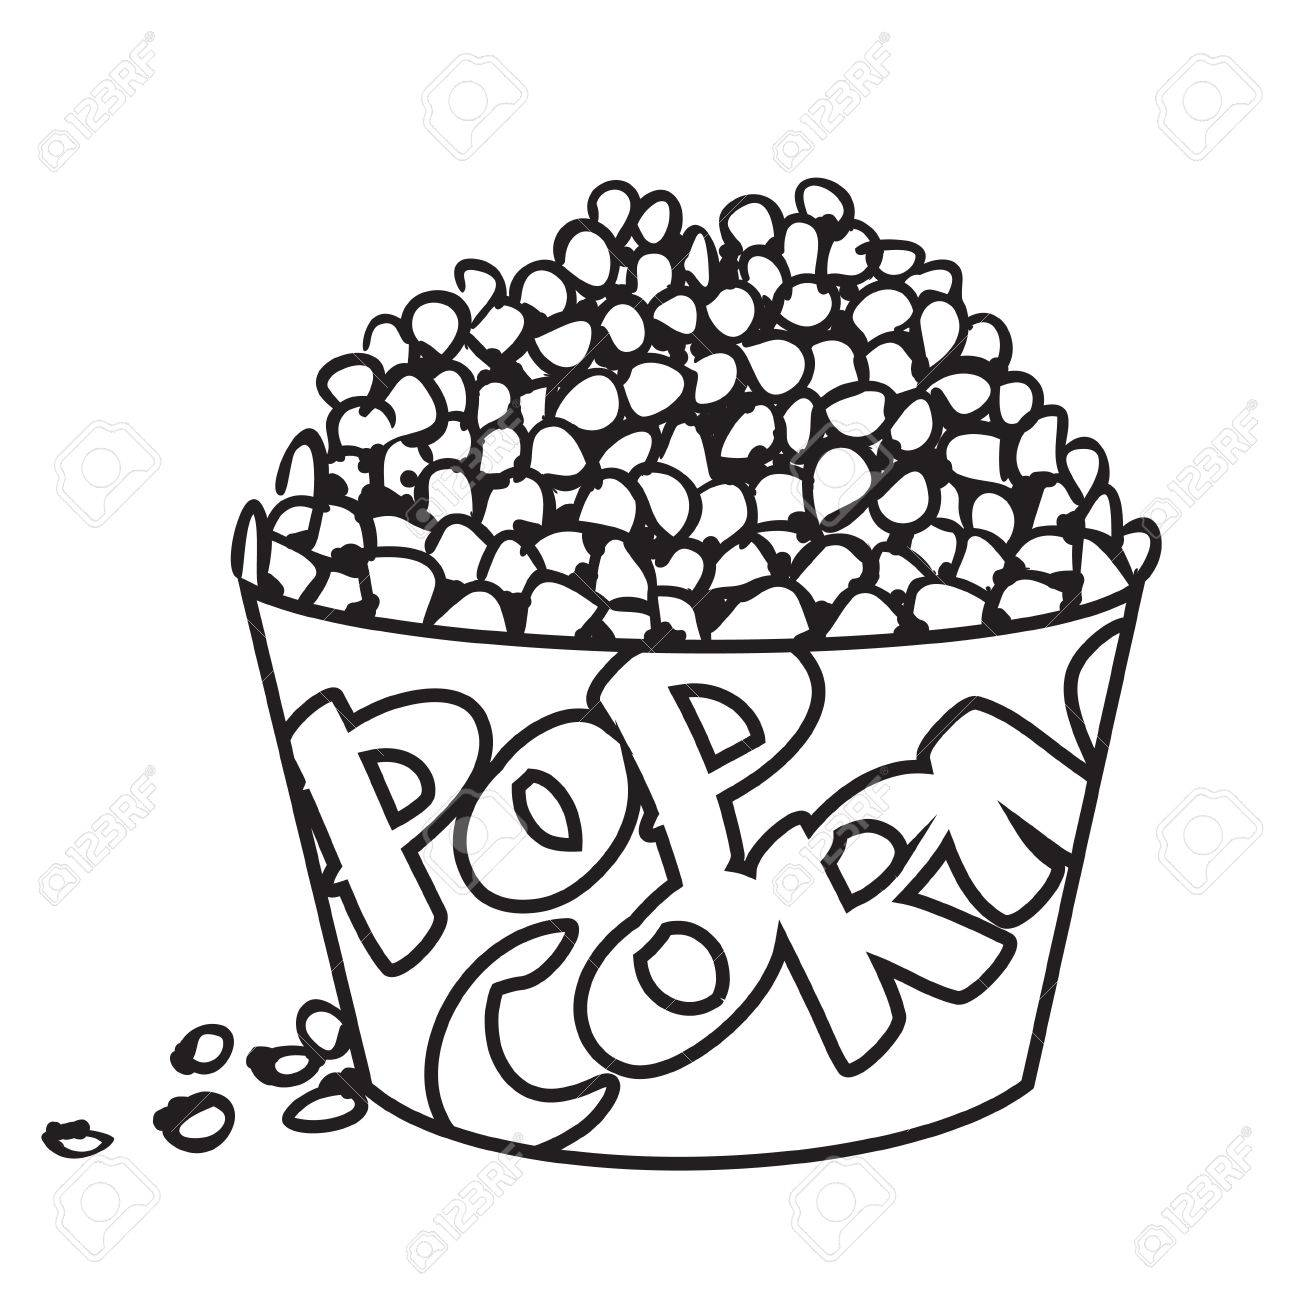 Popcorn Box Drawing At Getdrawings Com Free For Personal